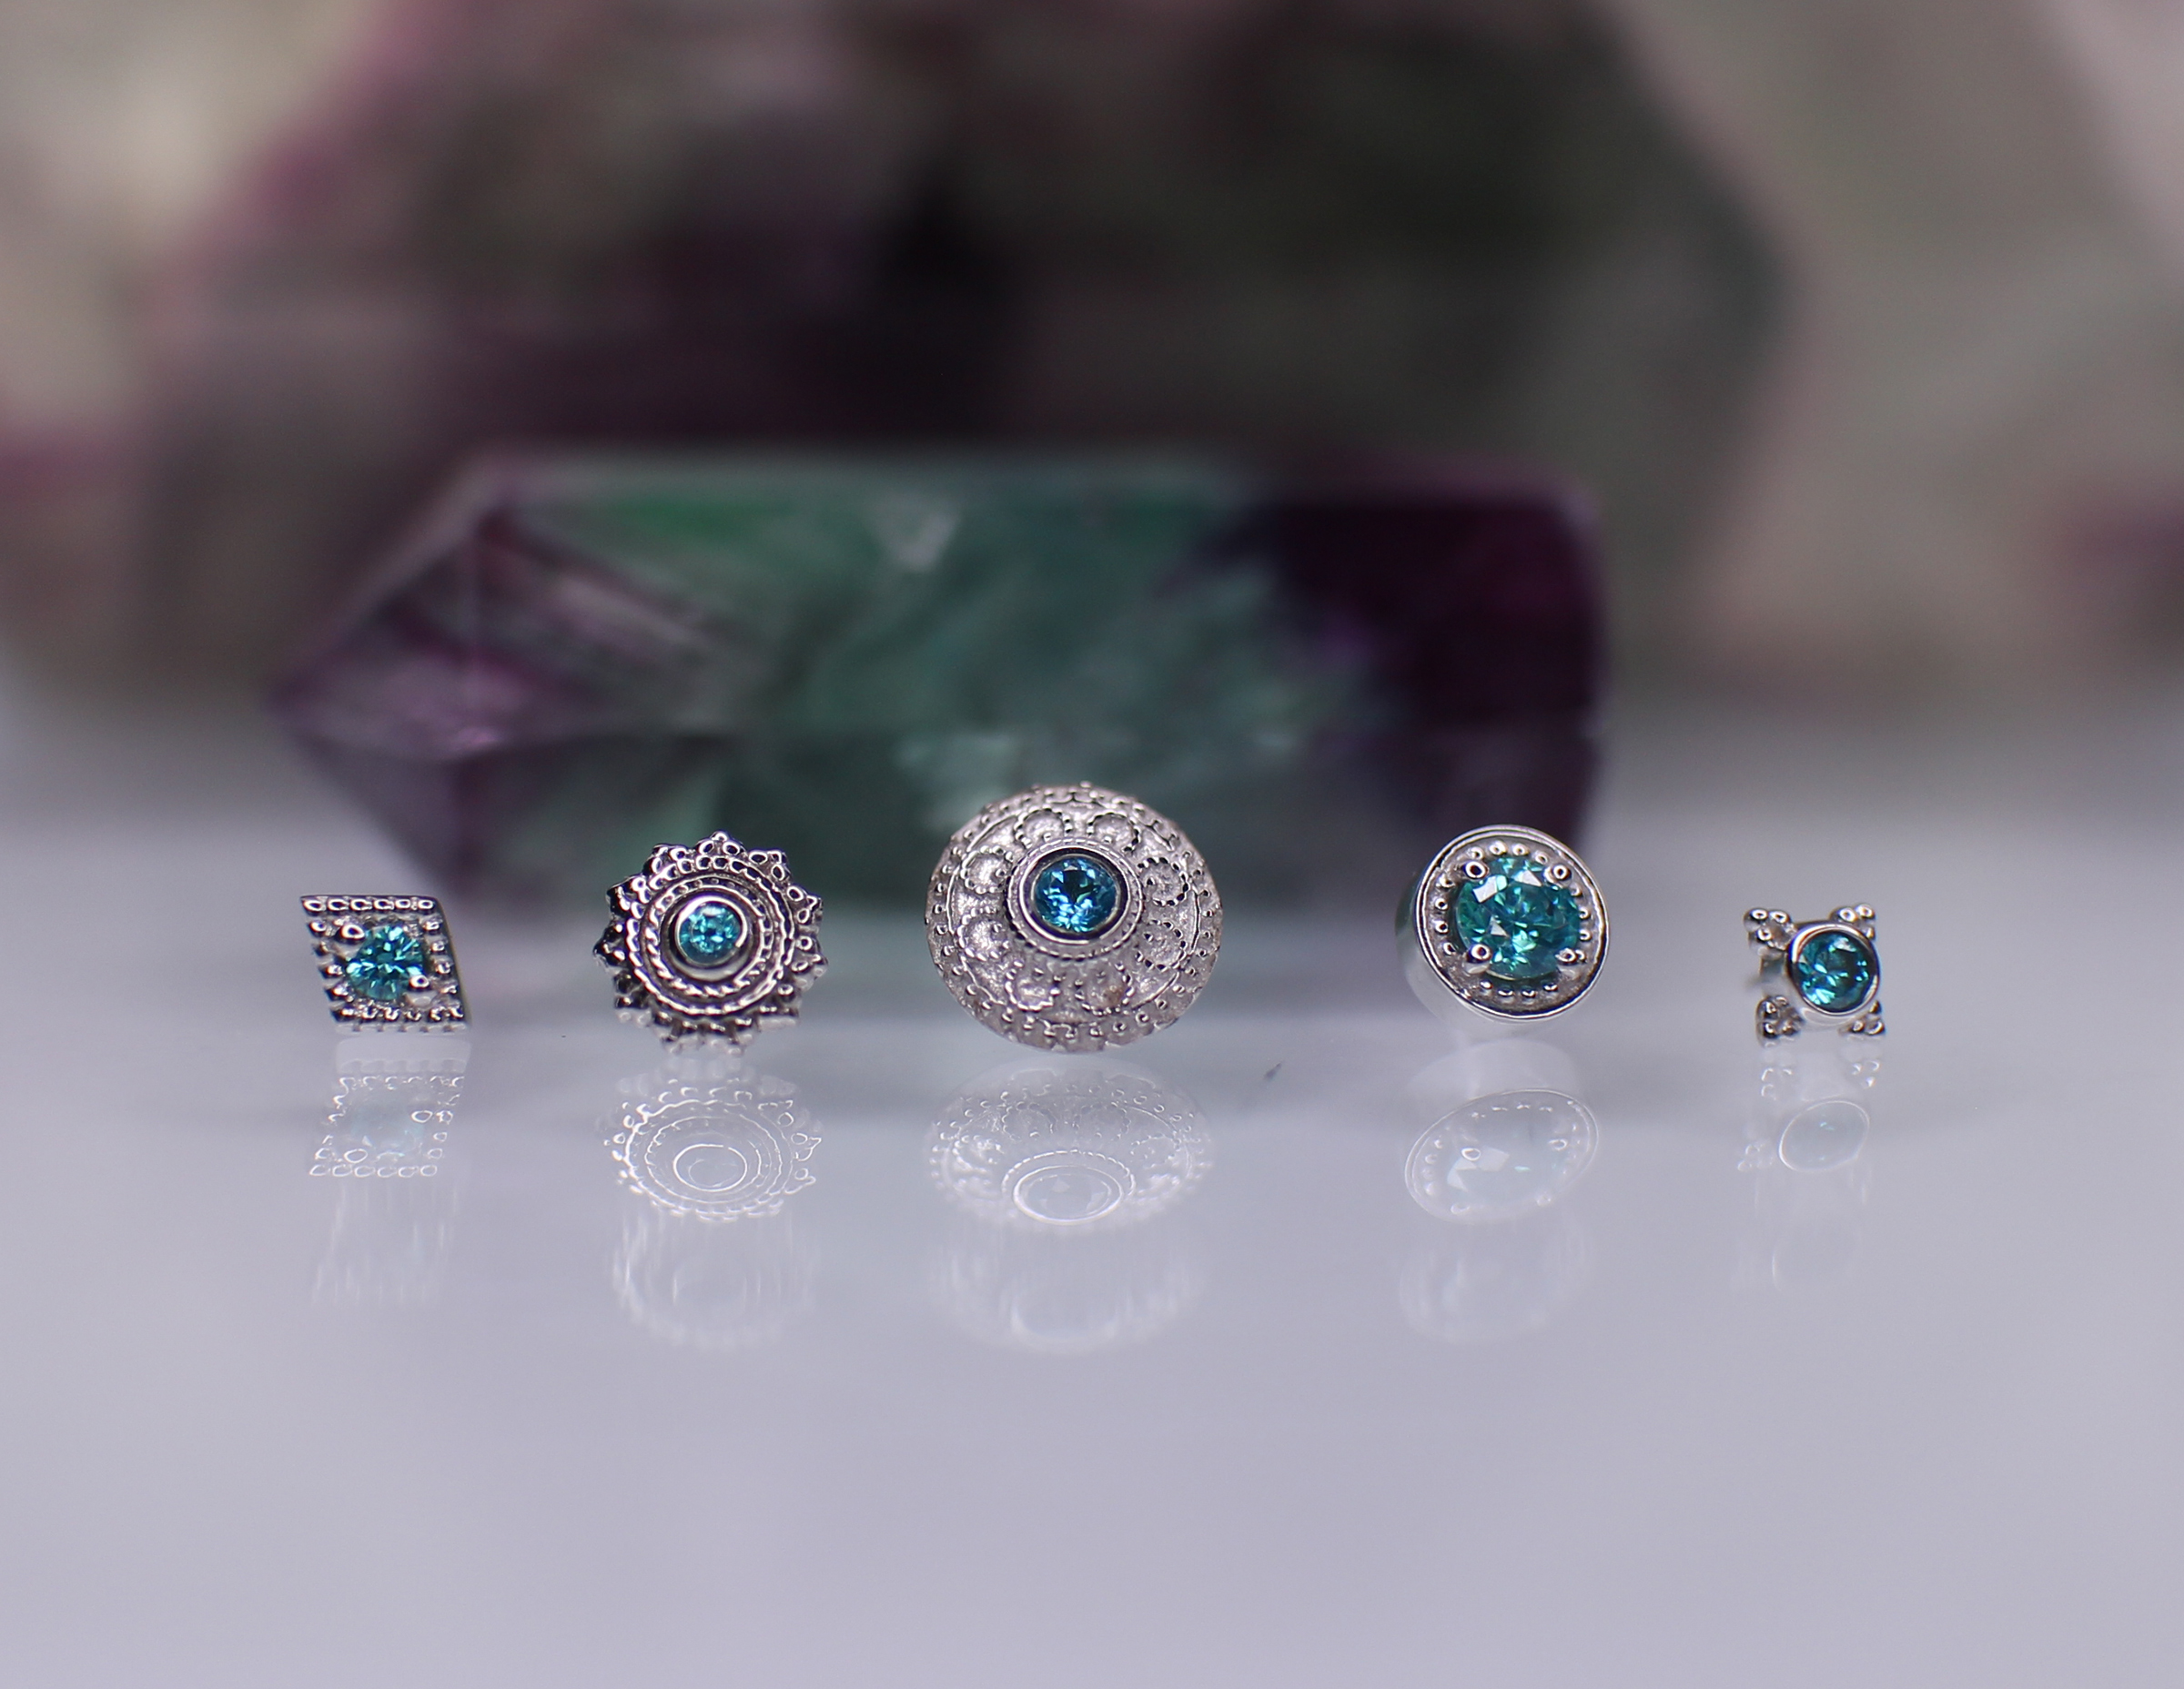 Body Piercing Jewelry The Powers That Be Piercing